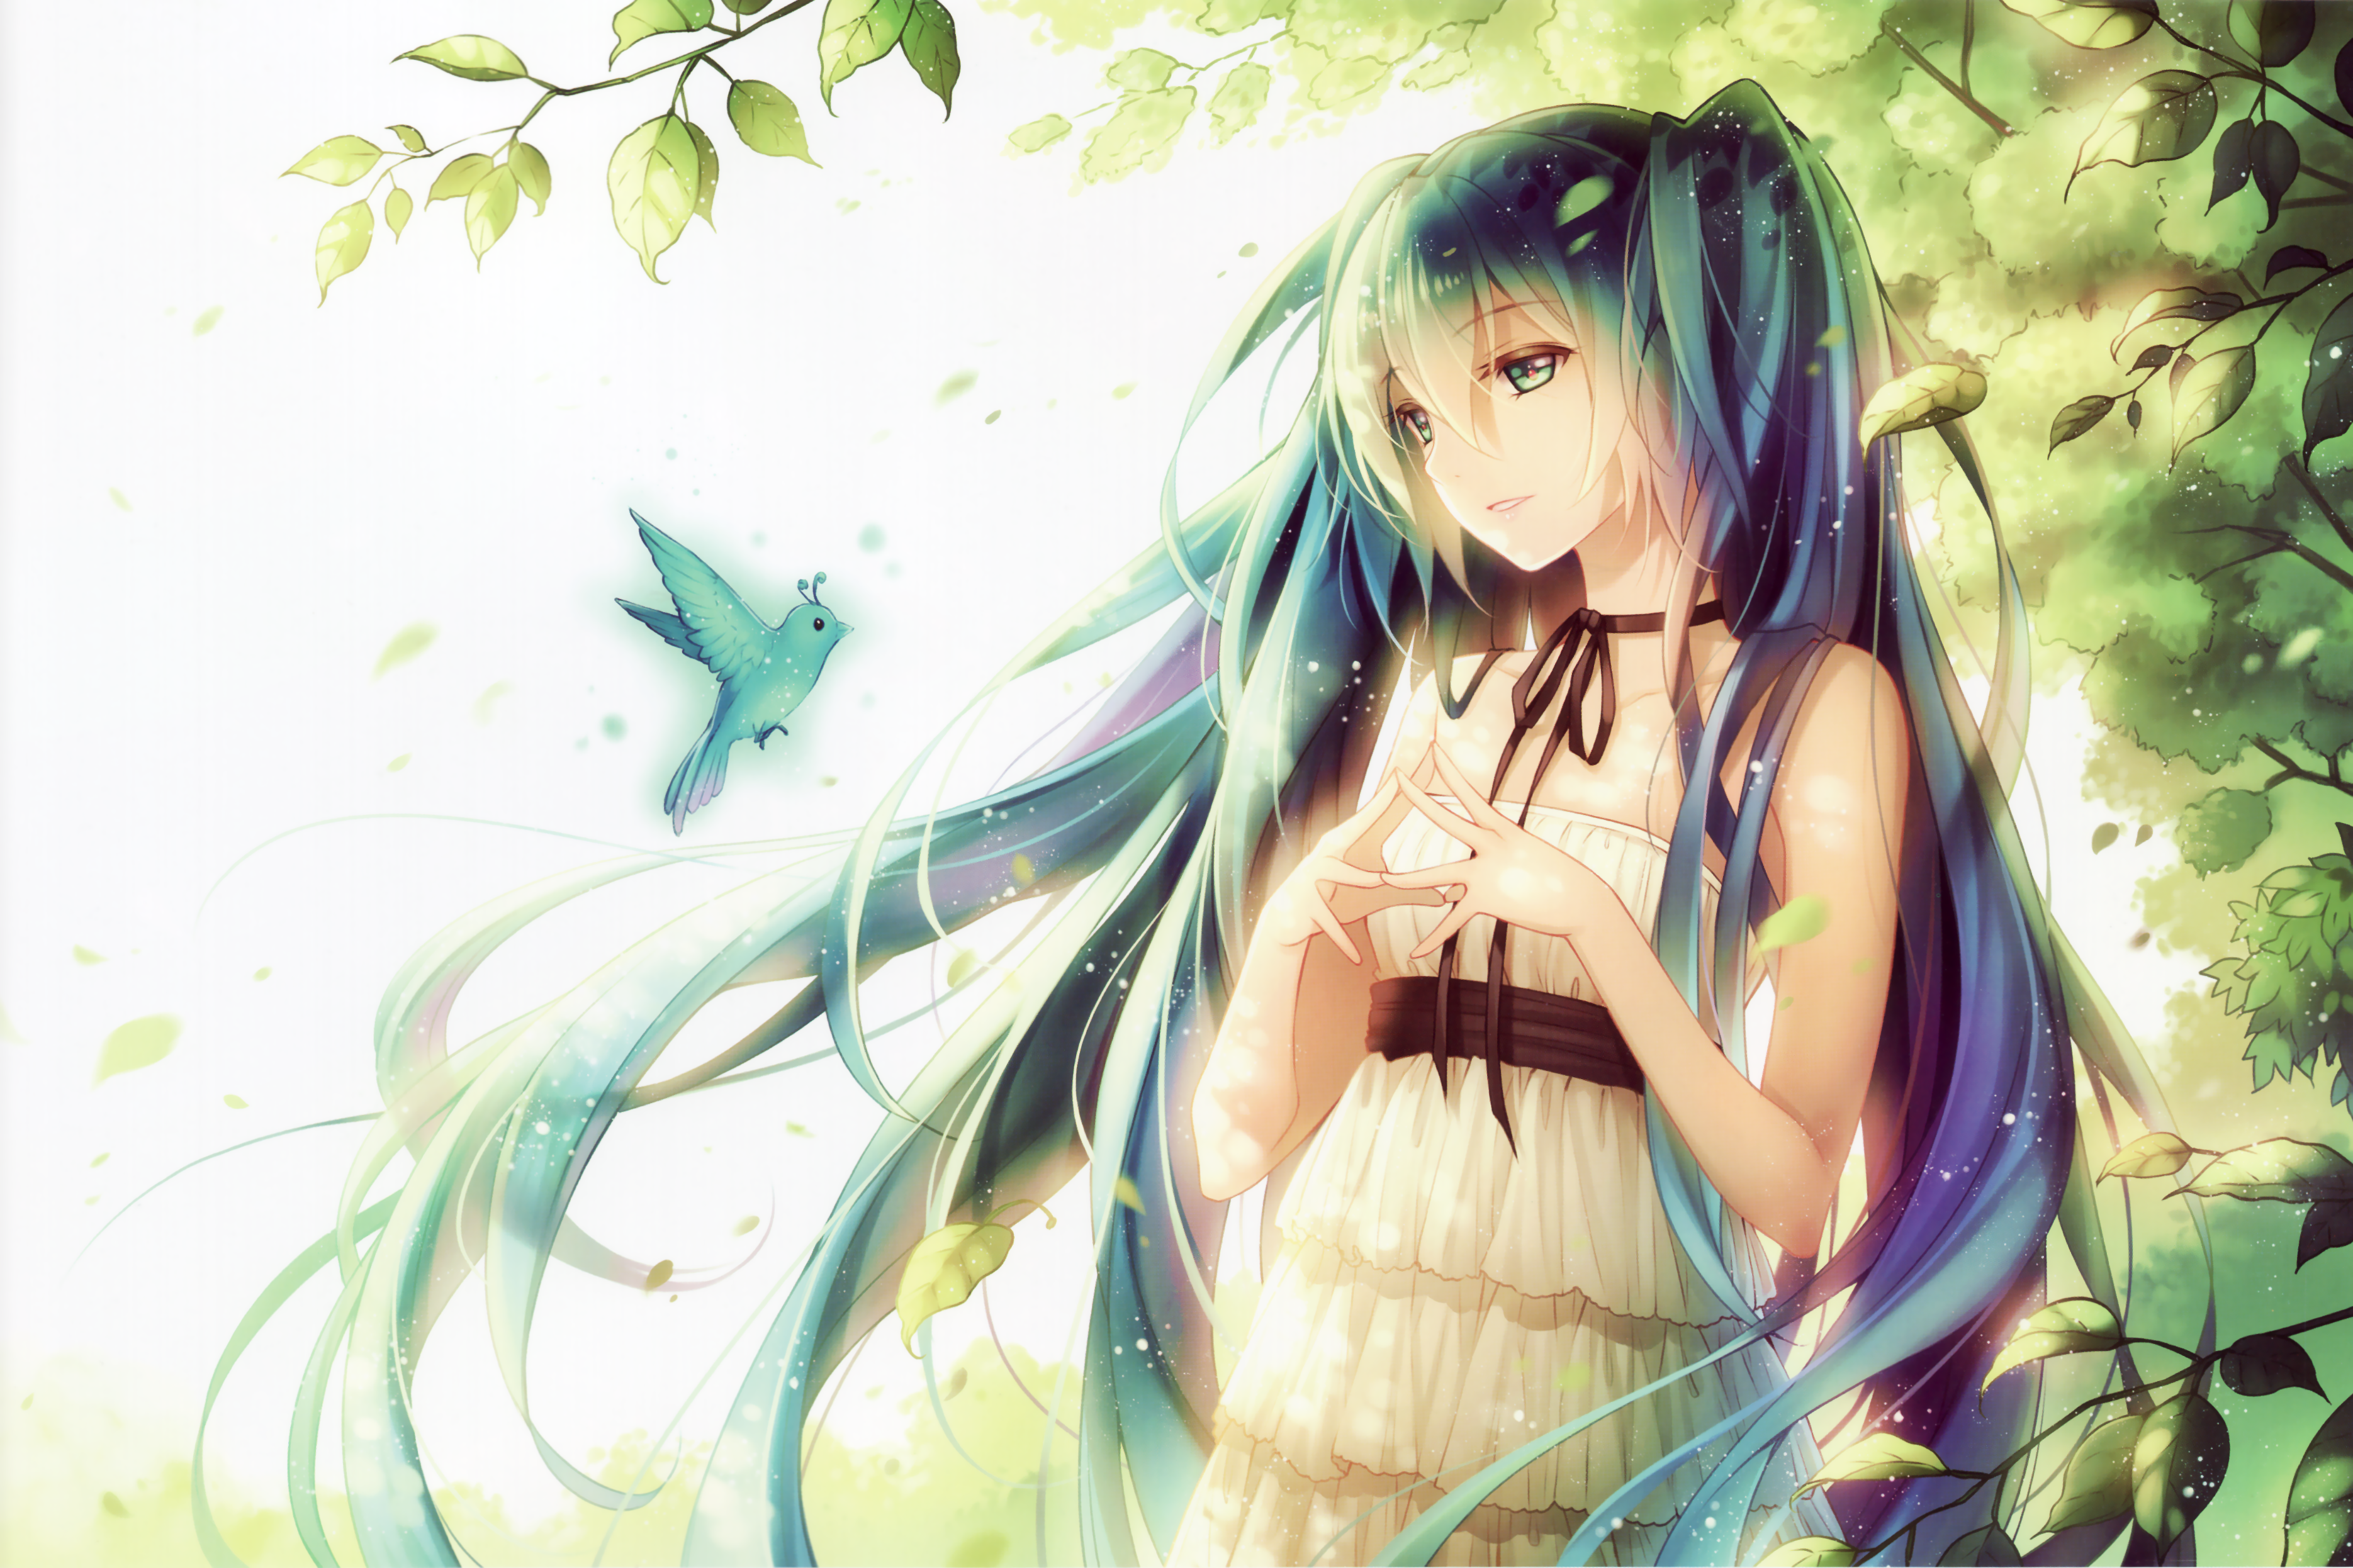 4096 anime girl hd wallpapers | background images - wallpaper abyss